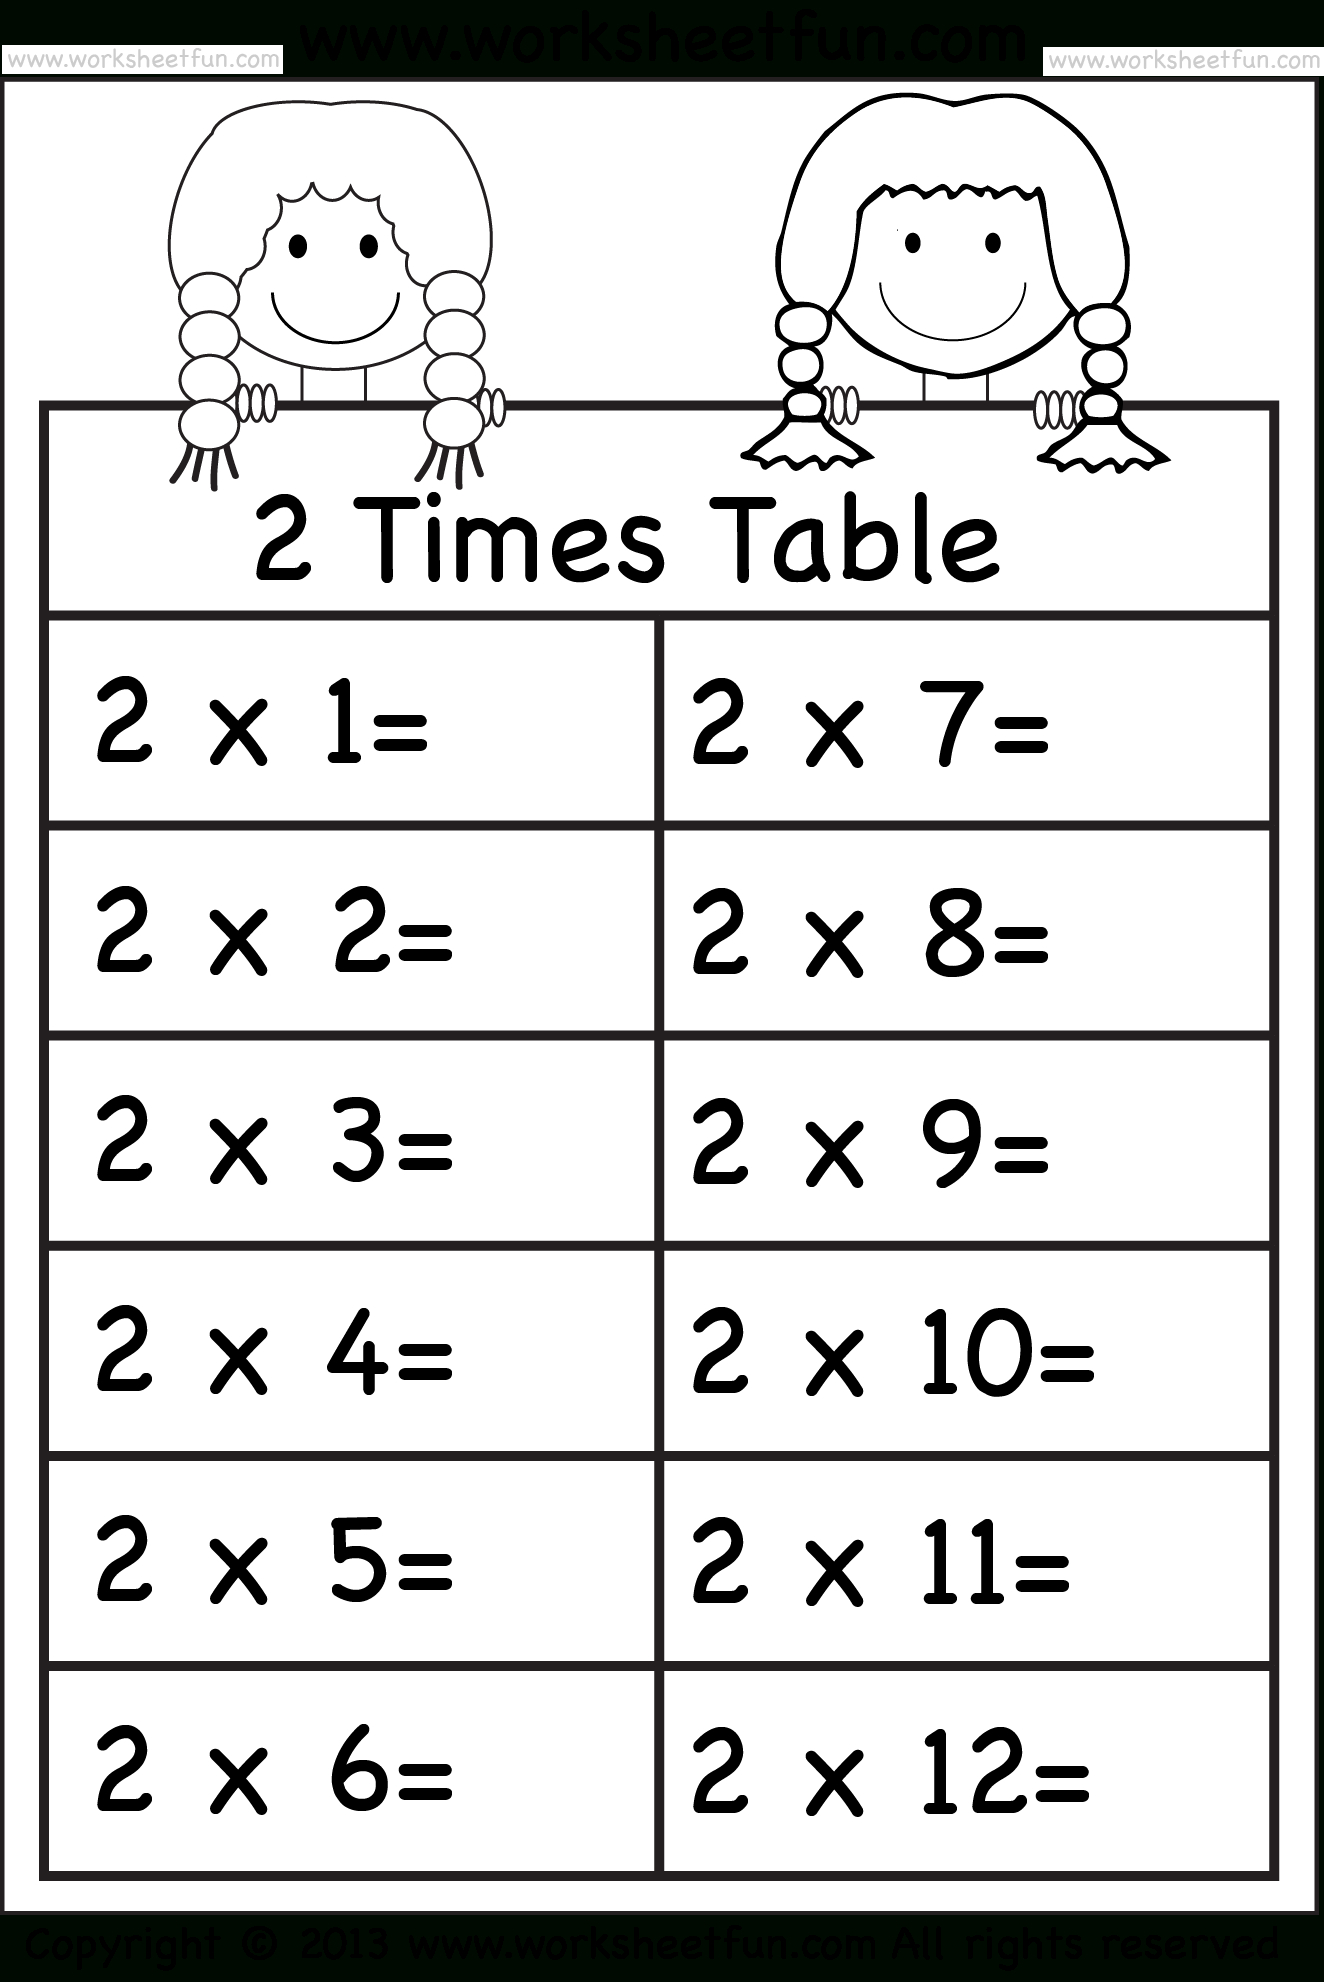 Times Tables Worksheets – 2, 3, 4, 5, 6, 7, 8, 9, 10, 11 And throughout Multiplication Worksheets 5-9